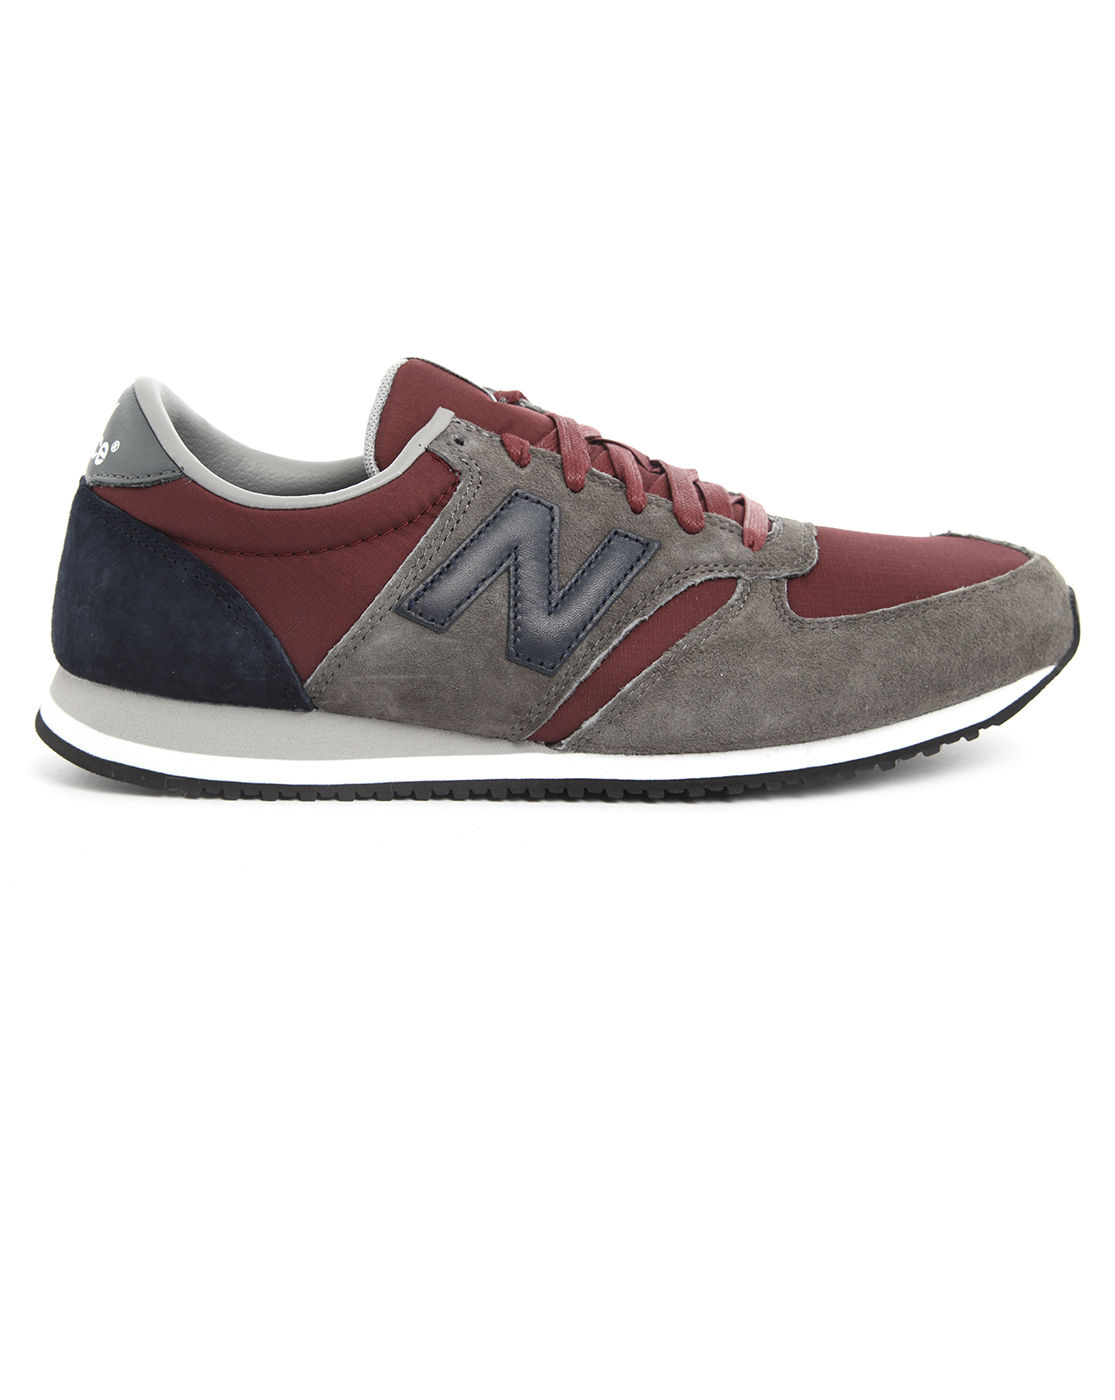 new balance grey bordeaux suede 420 sneakers in gray for men grey lyst. Black Bedroom Furniture Sets. Home Design Ideas